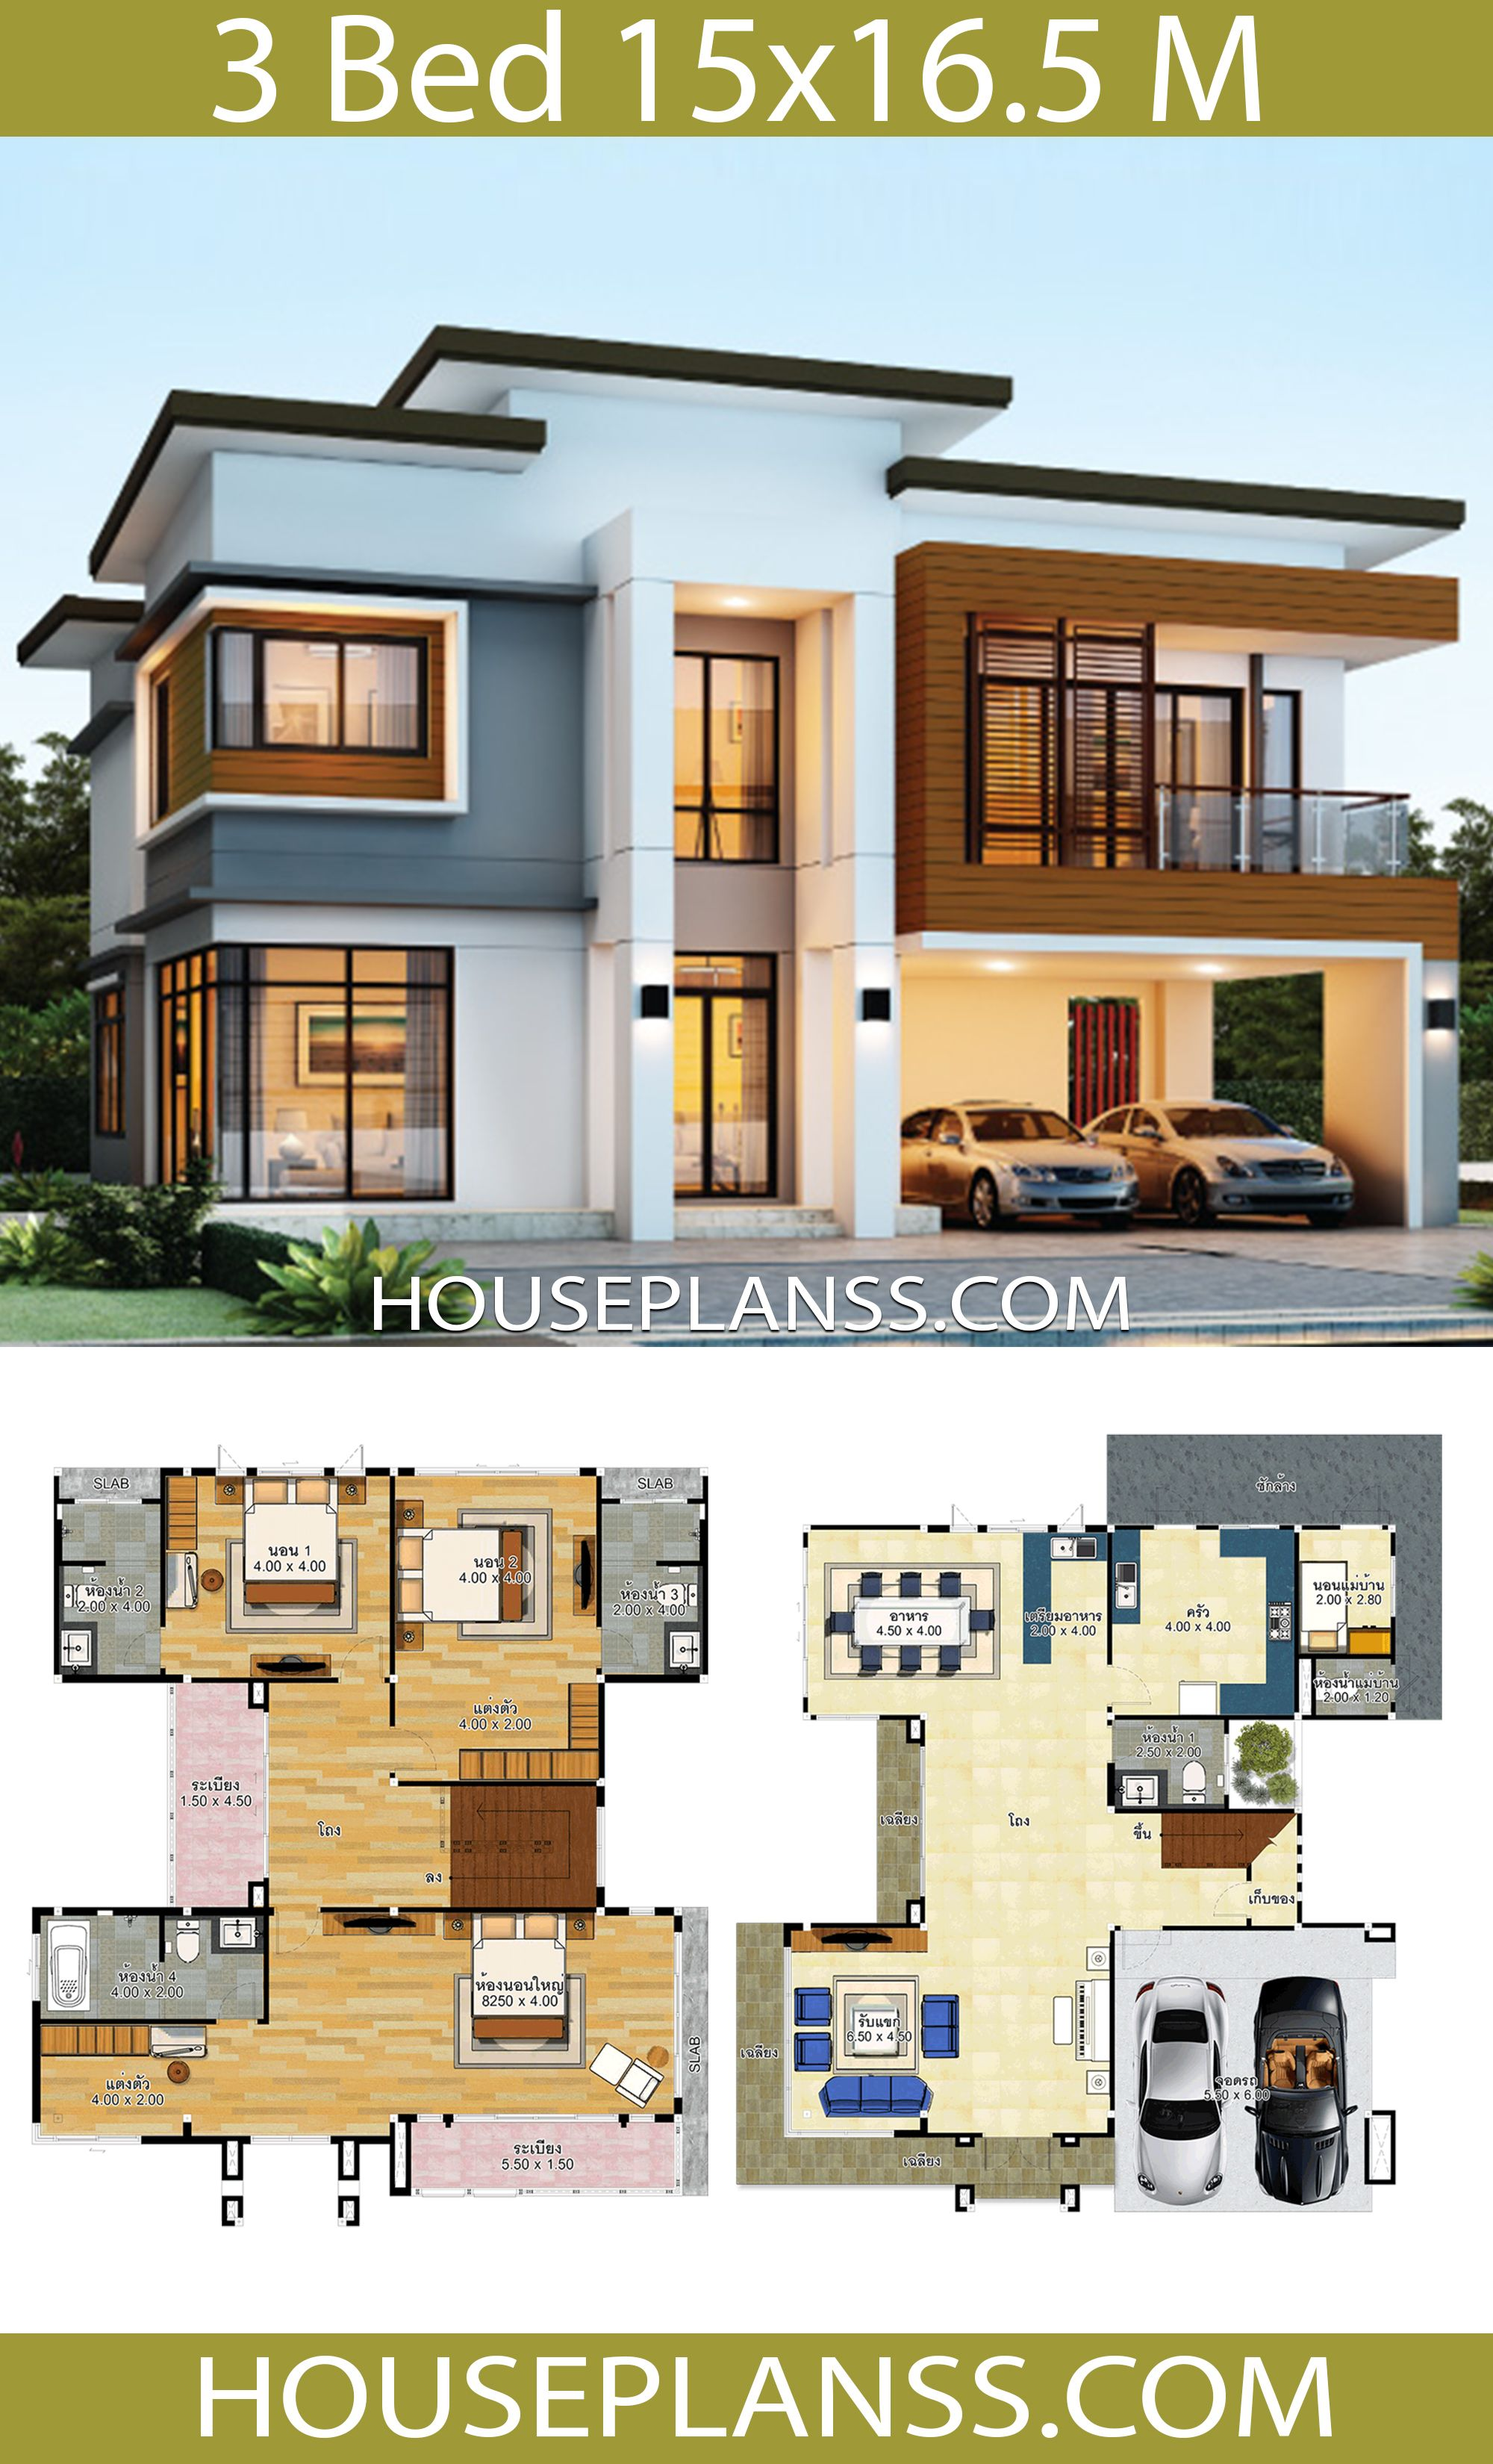 House Design Idea 15x16 5 With 3 Bedrooms House Plans 3d House Plans Mansion Duplex House Design Dream House Plans